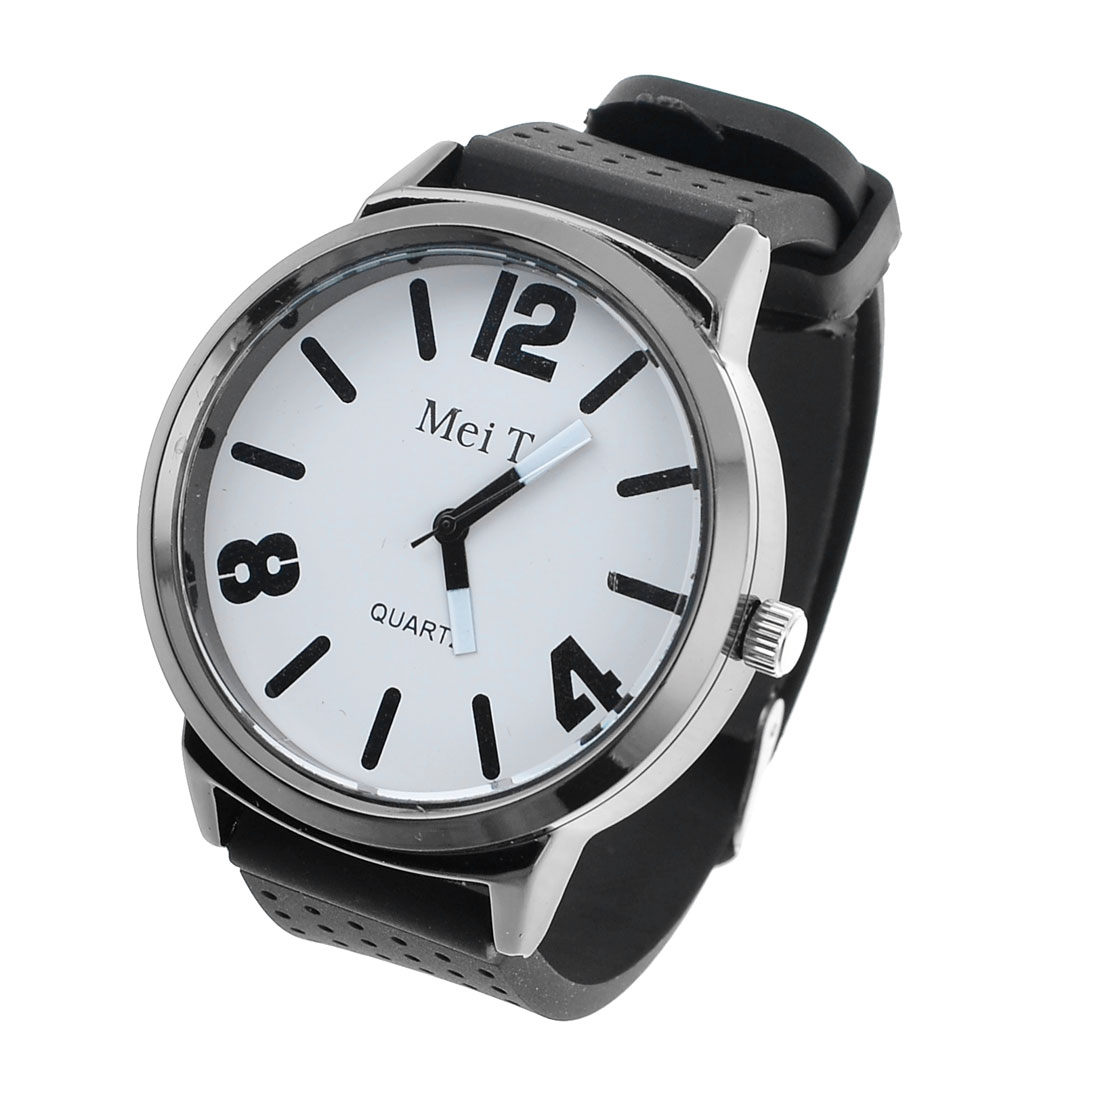 Lady Round Dial Adjustable Plastic Wrist Band Quartz Watch Black White